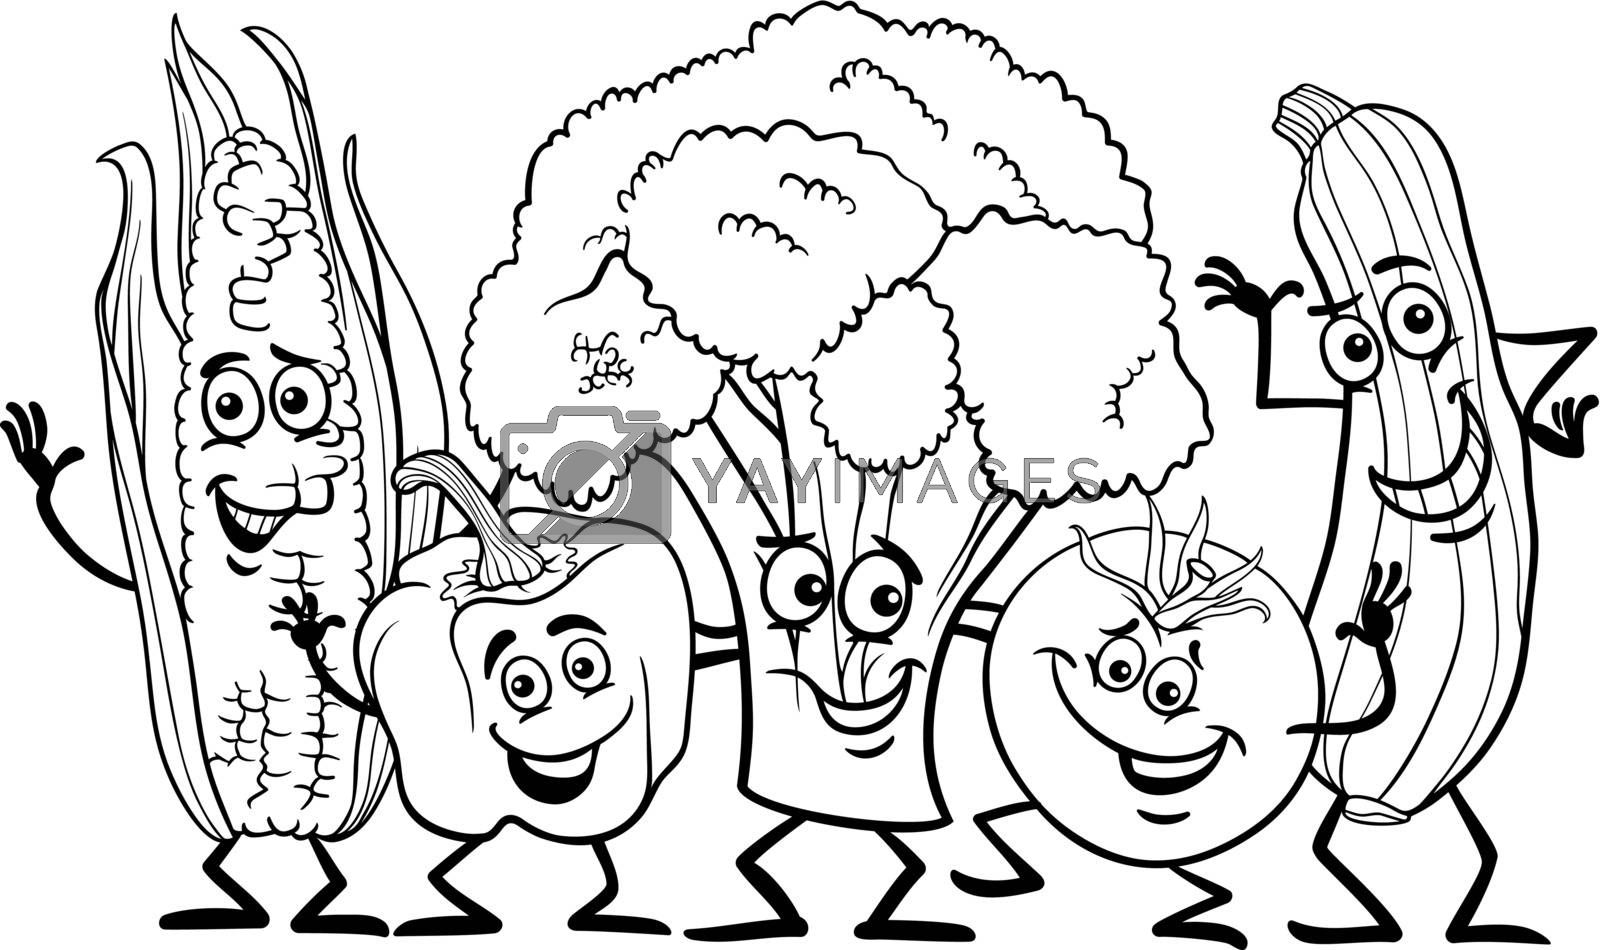 Black and White Cartoon Illustration of Happy Vegetables Food Characters Group for Coloring Book